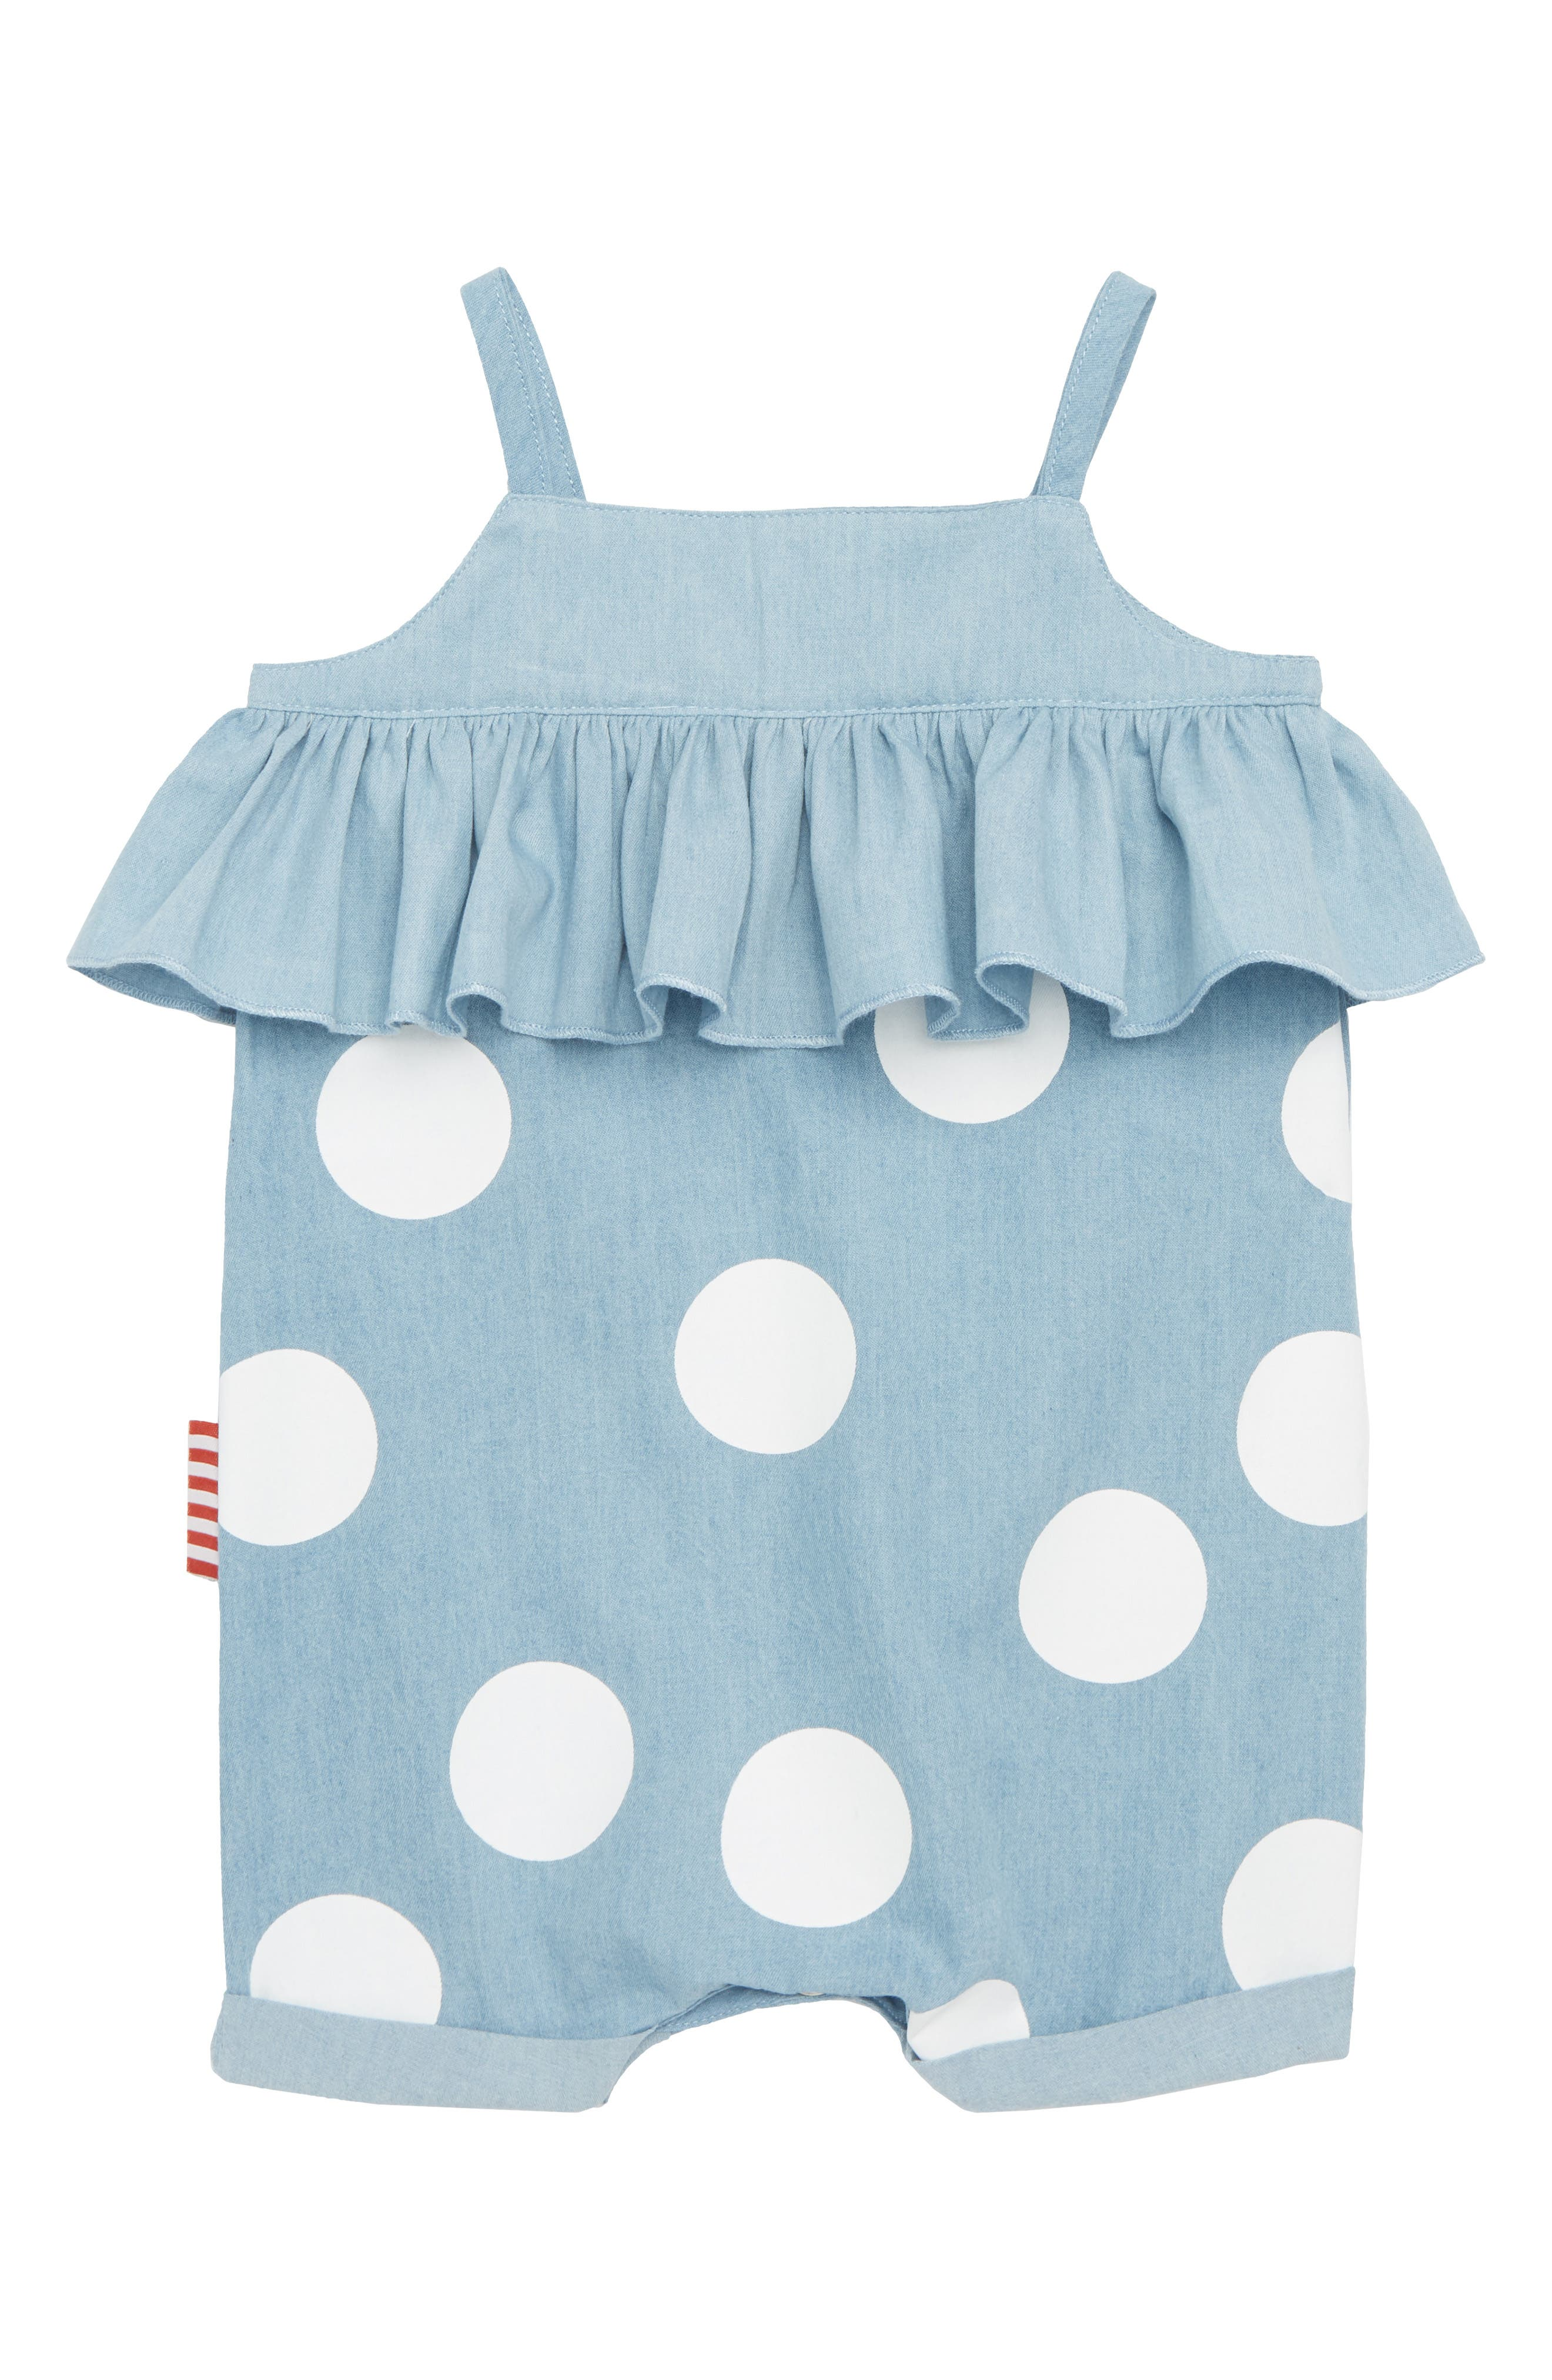 Alternate Image 1 Selected - SOOKIbaby Spotty Chambray Romper (Baby Girls)